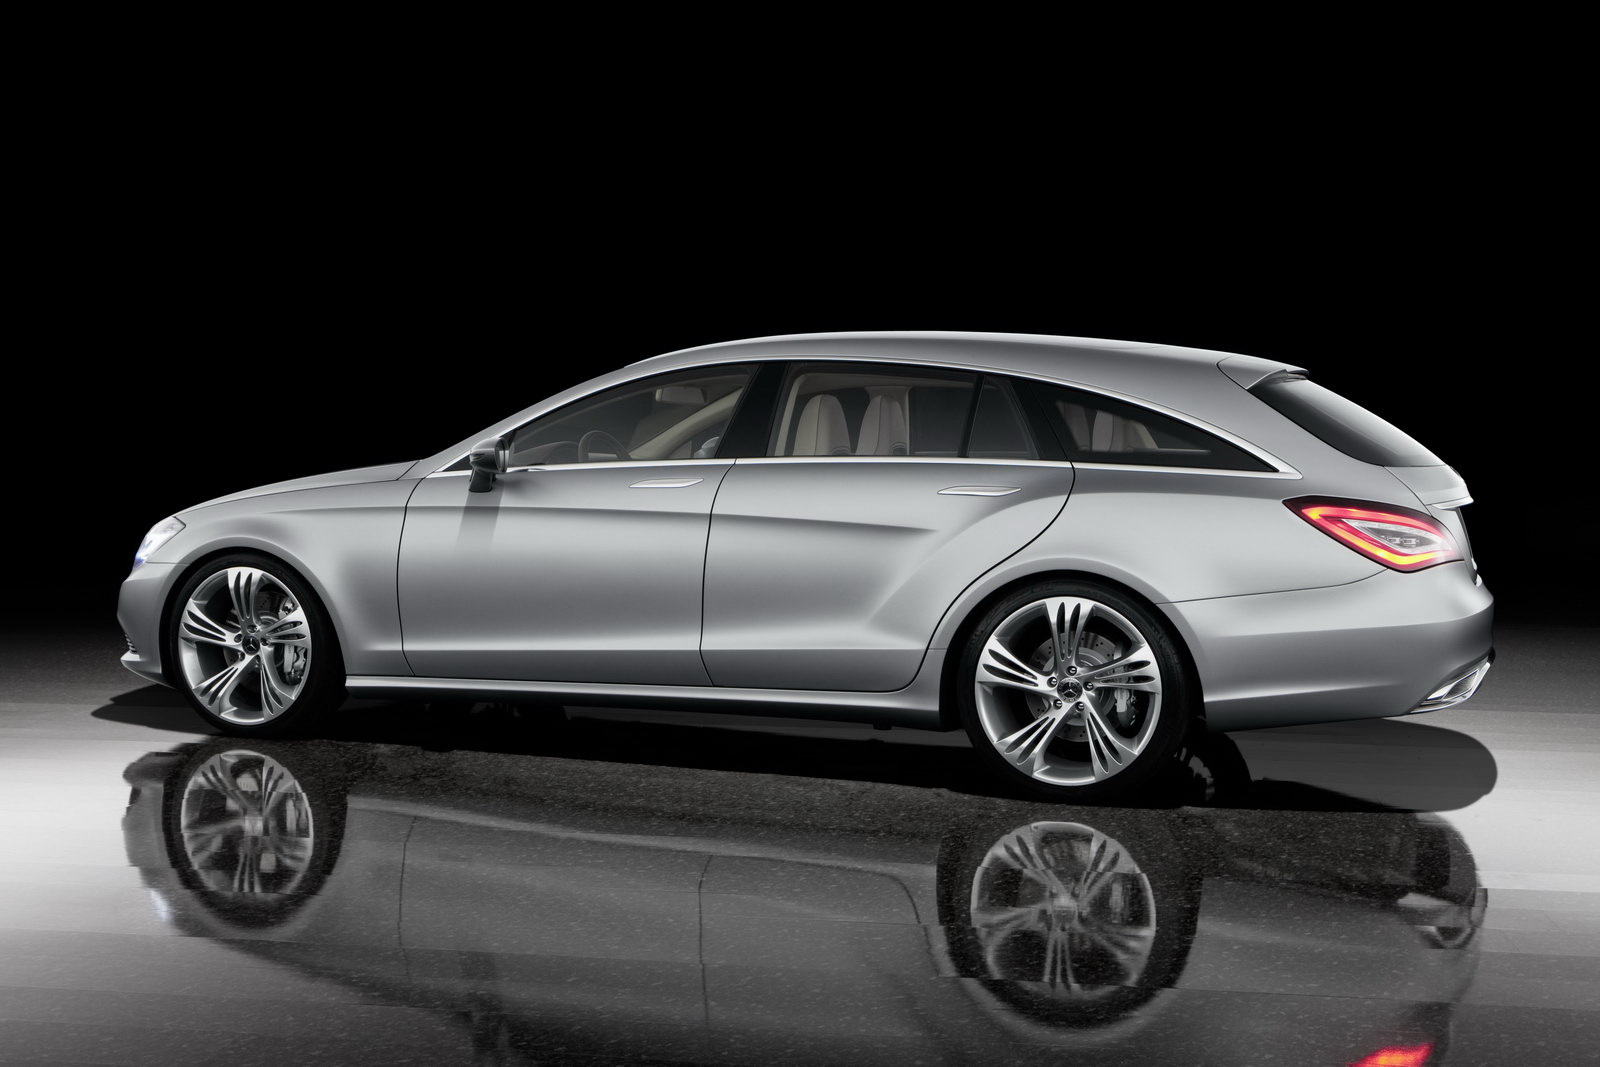 pekin 2010 mercedes cls shooting brake concept. Black Bedroom Furniture Sets. Home Design Ideas